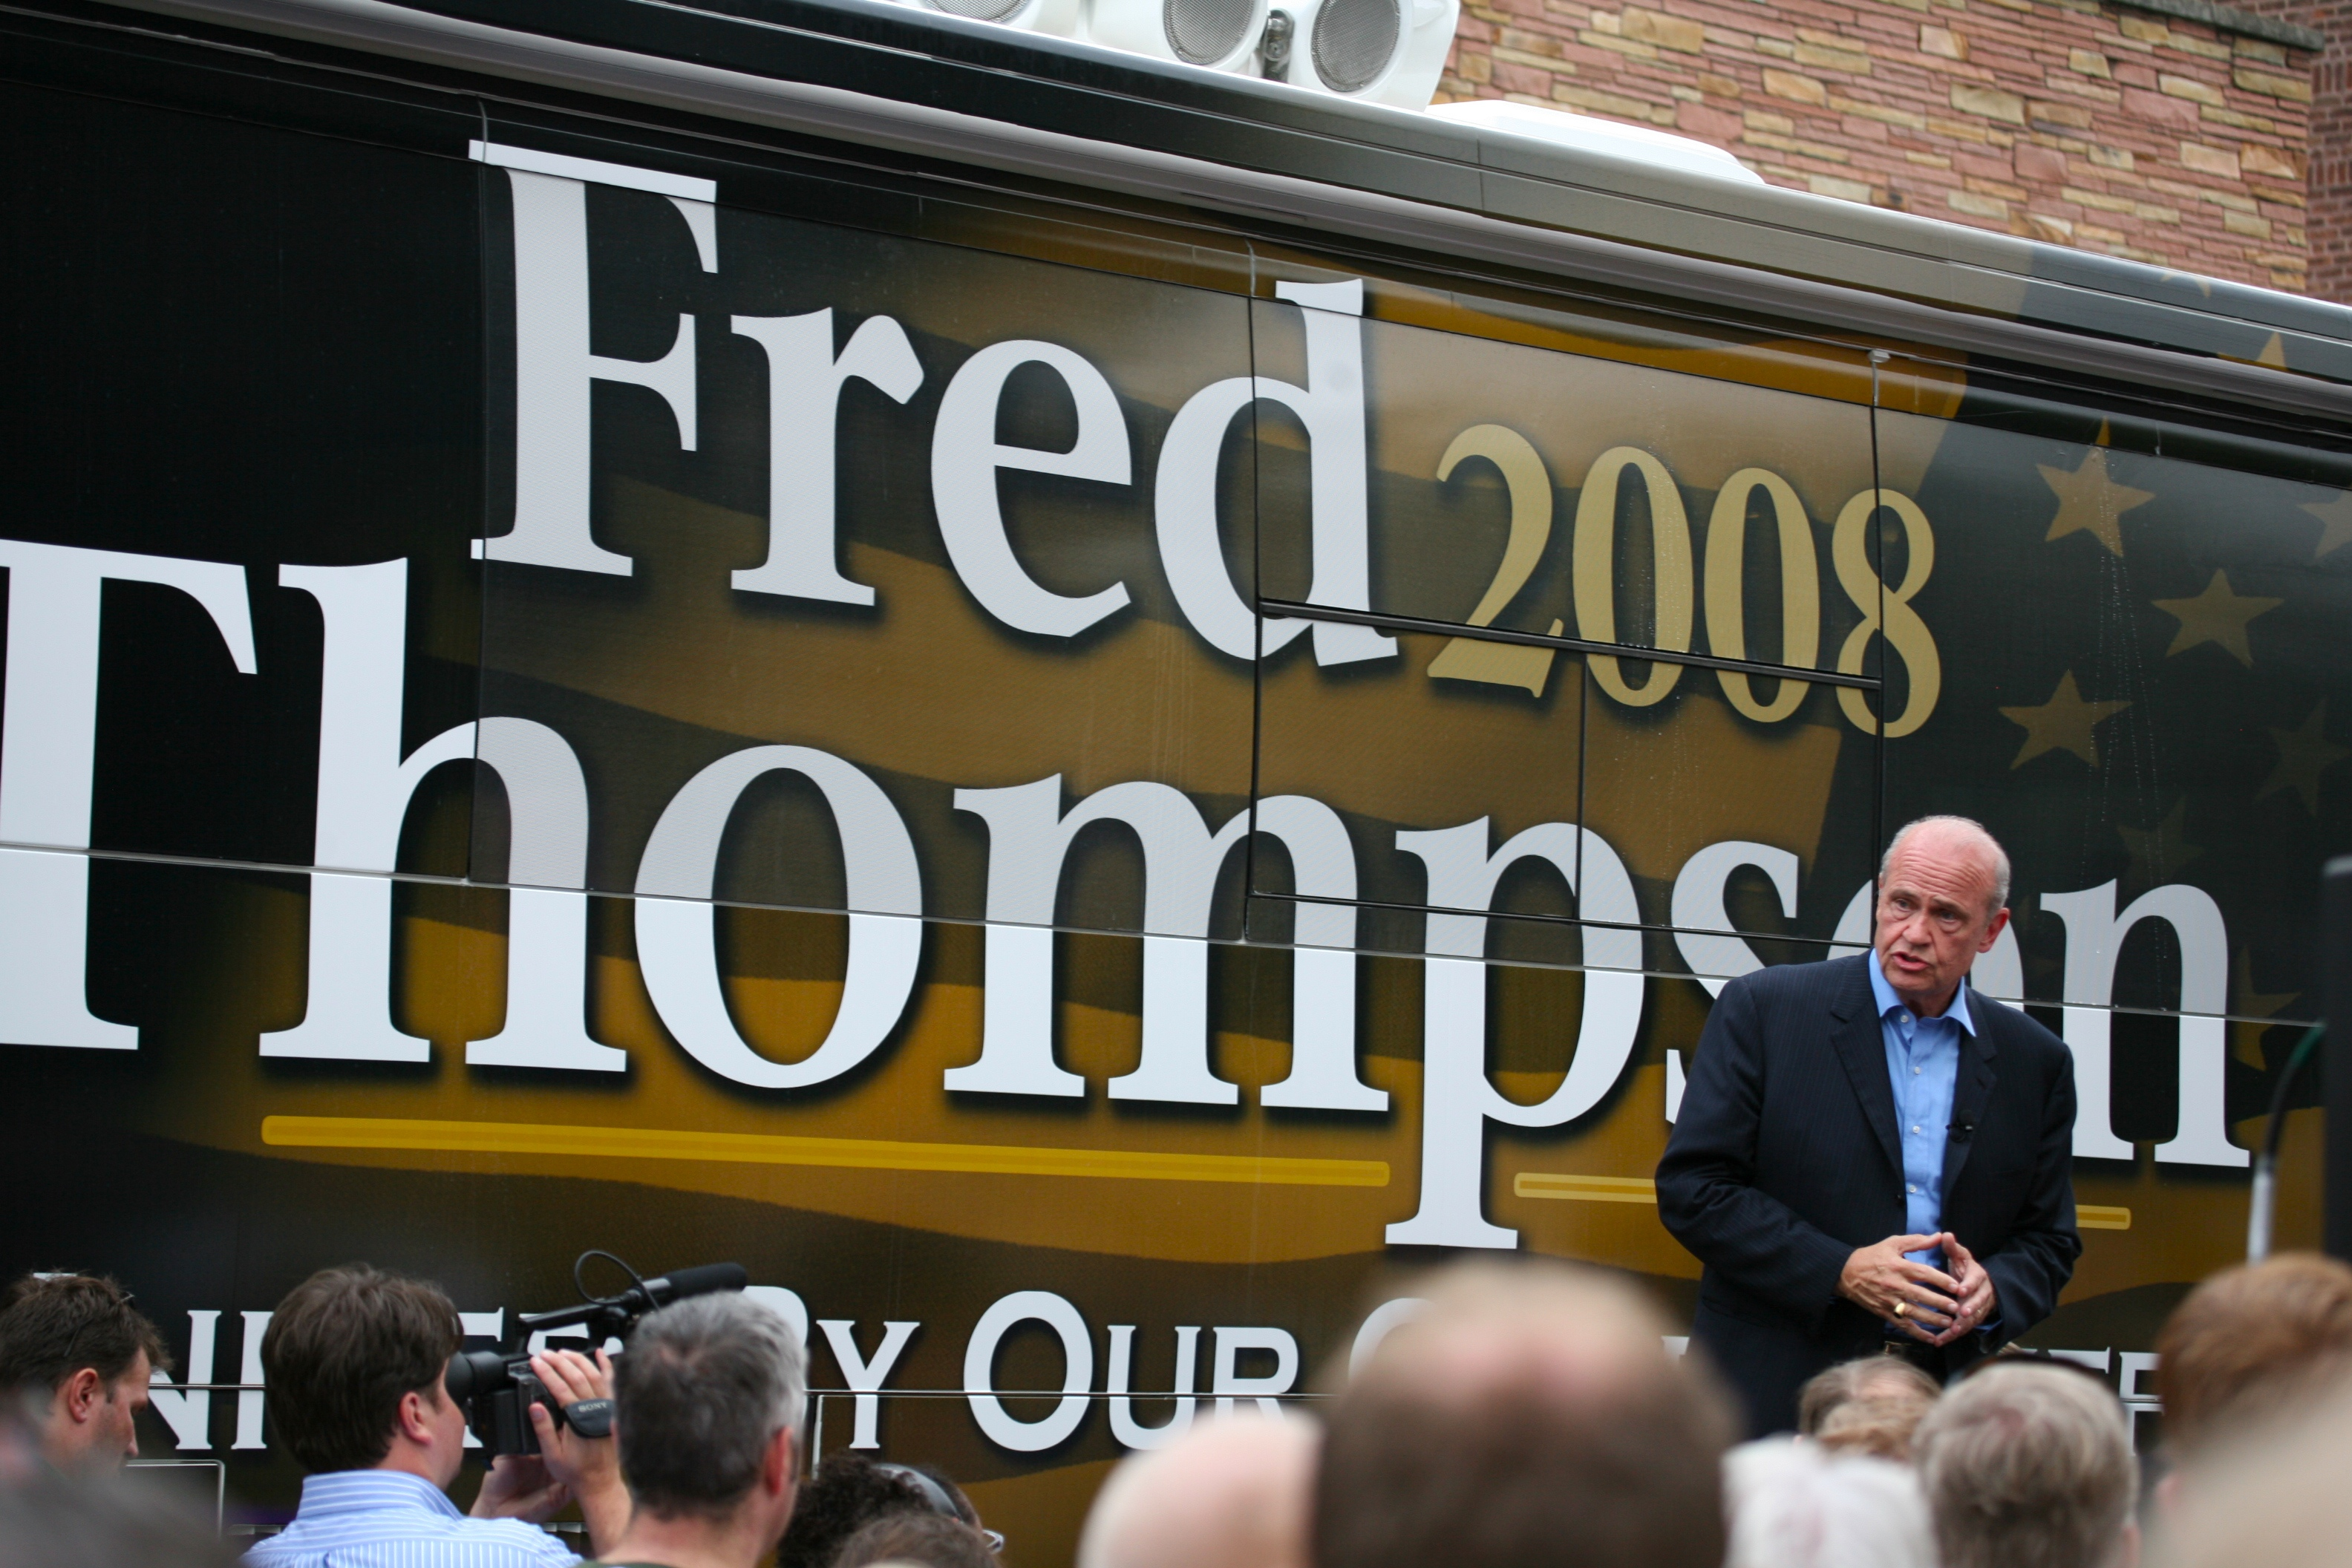 Fred Thompson and bus 2007